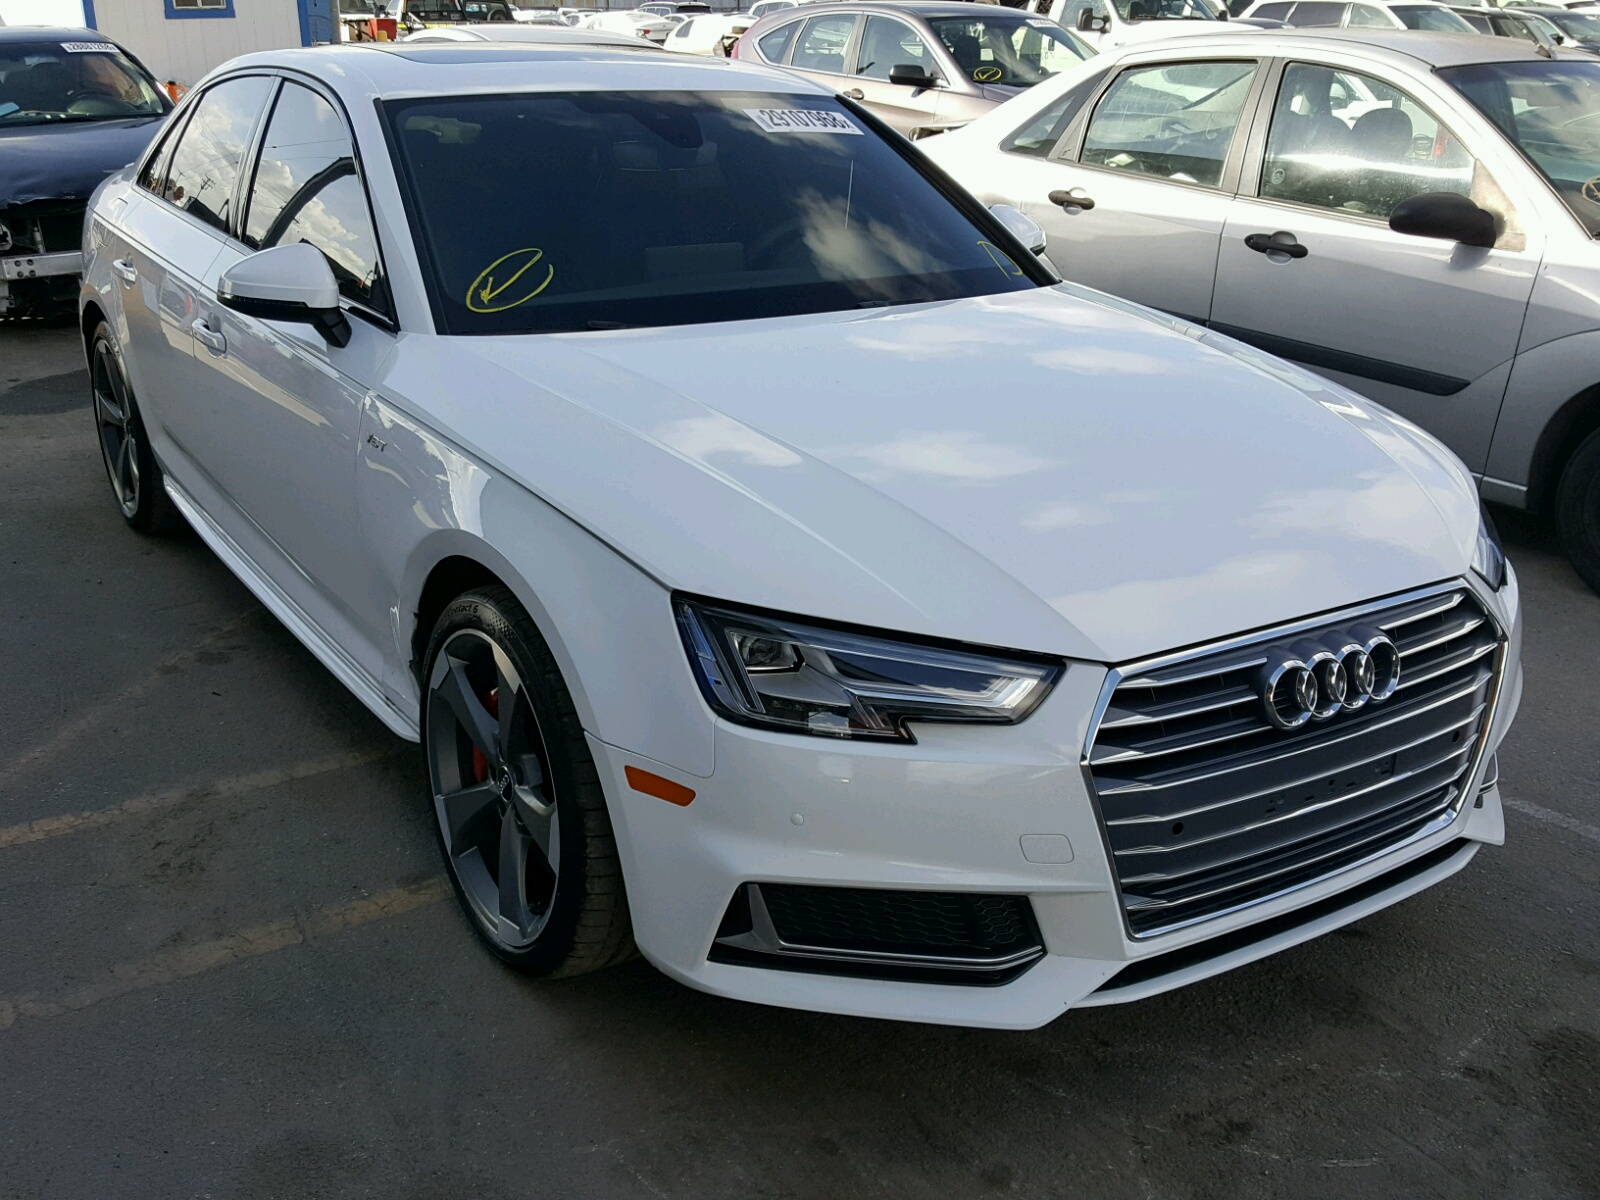 Auto Auction Ended on VIN: WUAC6AFR6DA900119 2013 AUDI RS5 in OH - COLUMBUS